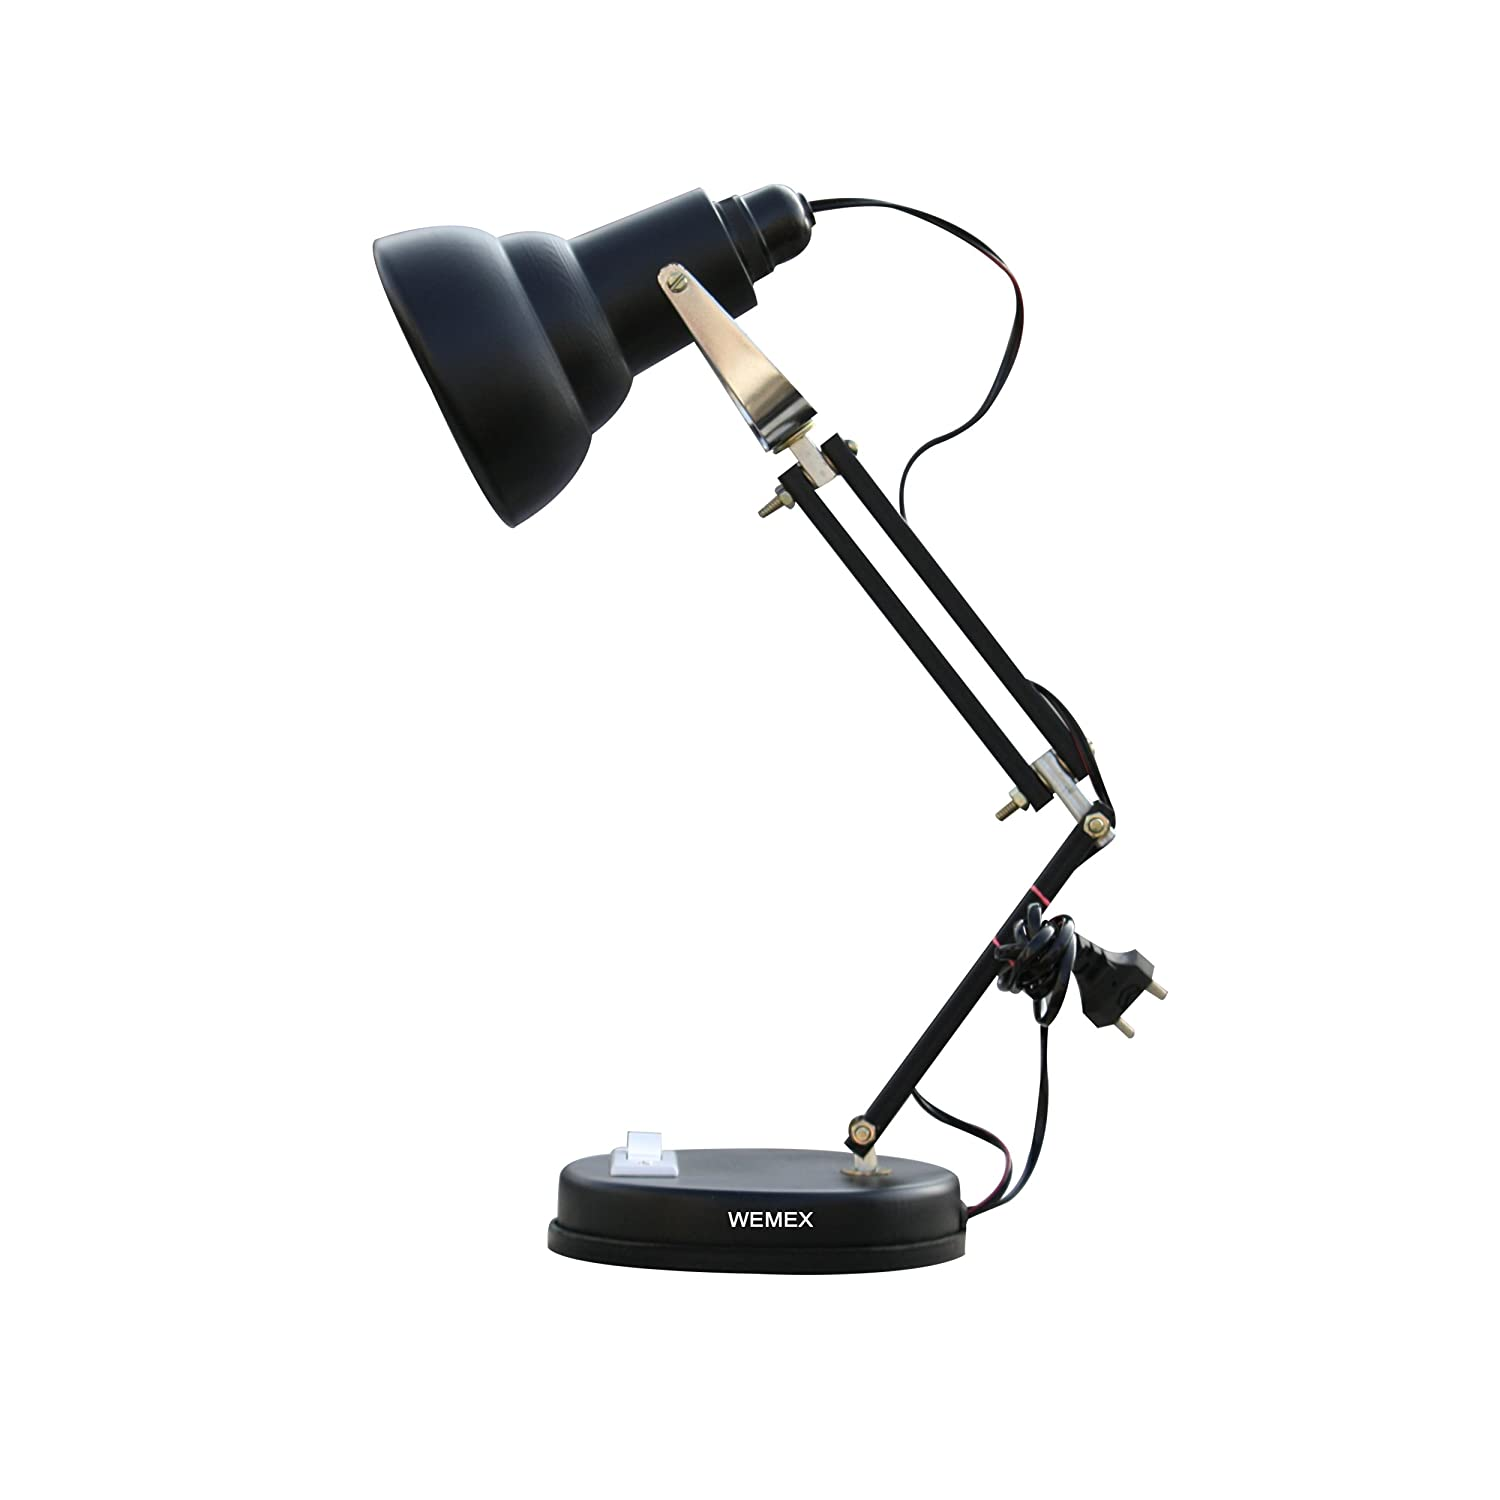 Buy wemex billie jean reading study table lamp online at low buy wemex billie jean reading study table lamp online at low prices in india amazon aloadofball